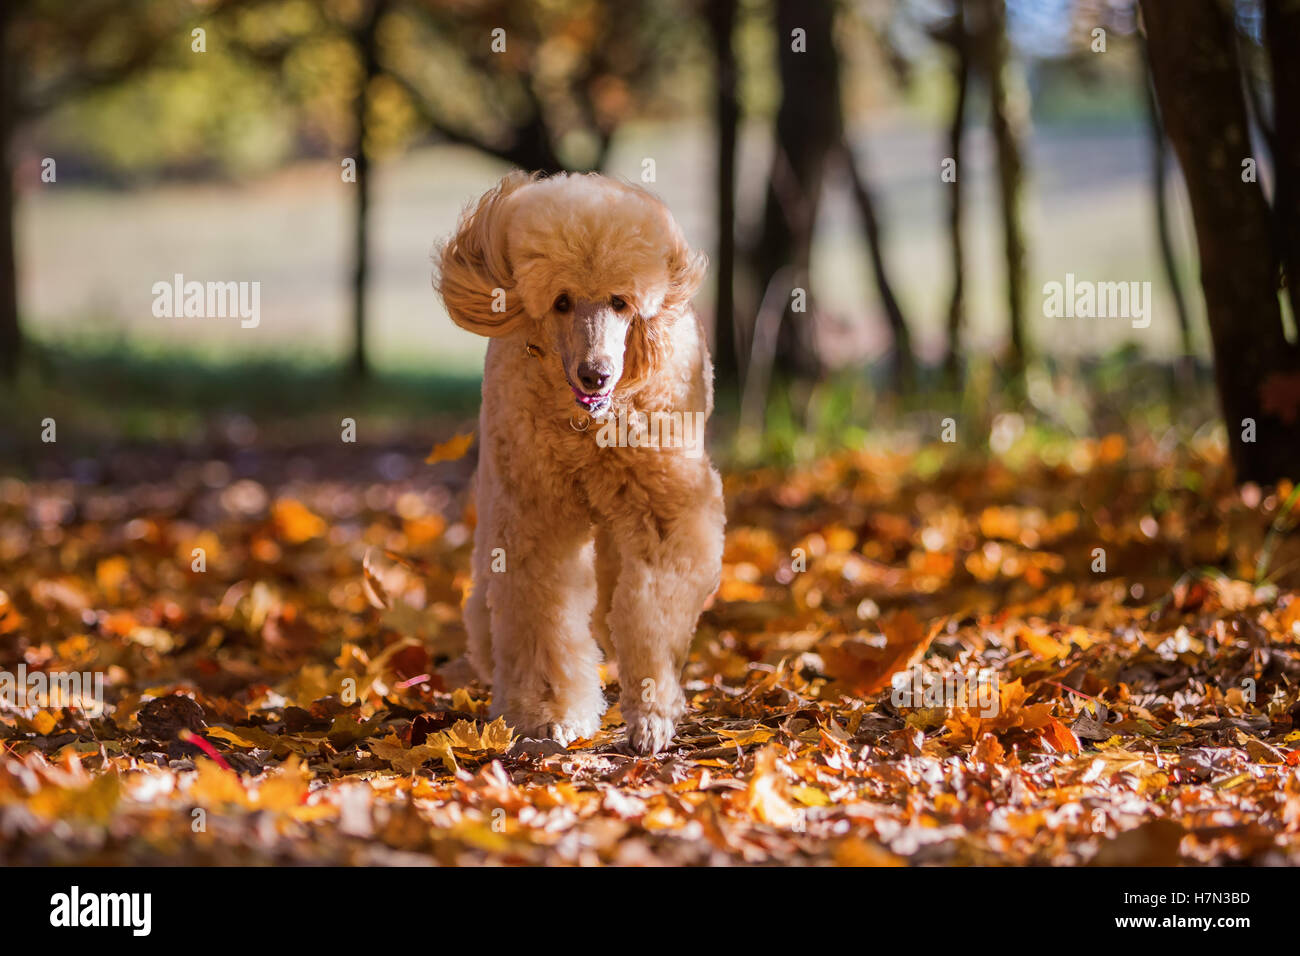 royal poodle running in the autumn forest - Stock Image